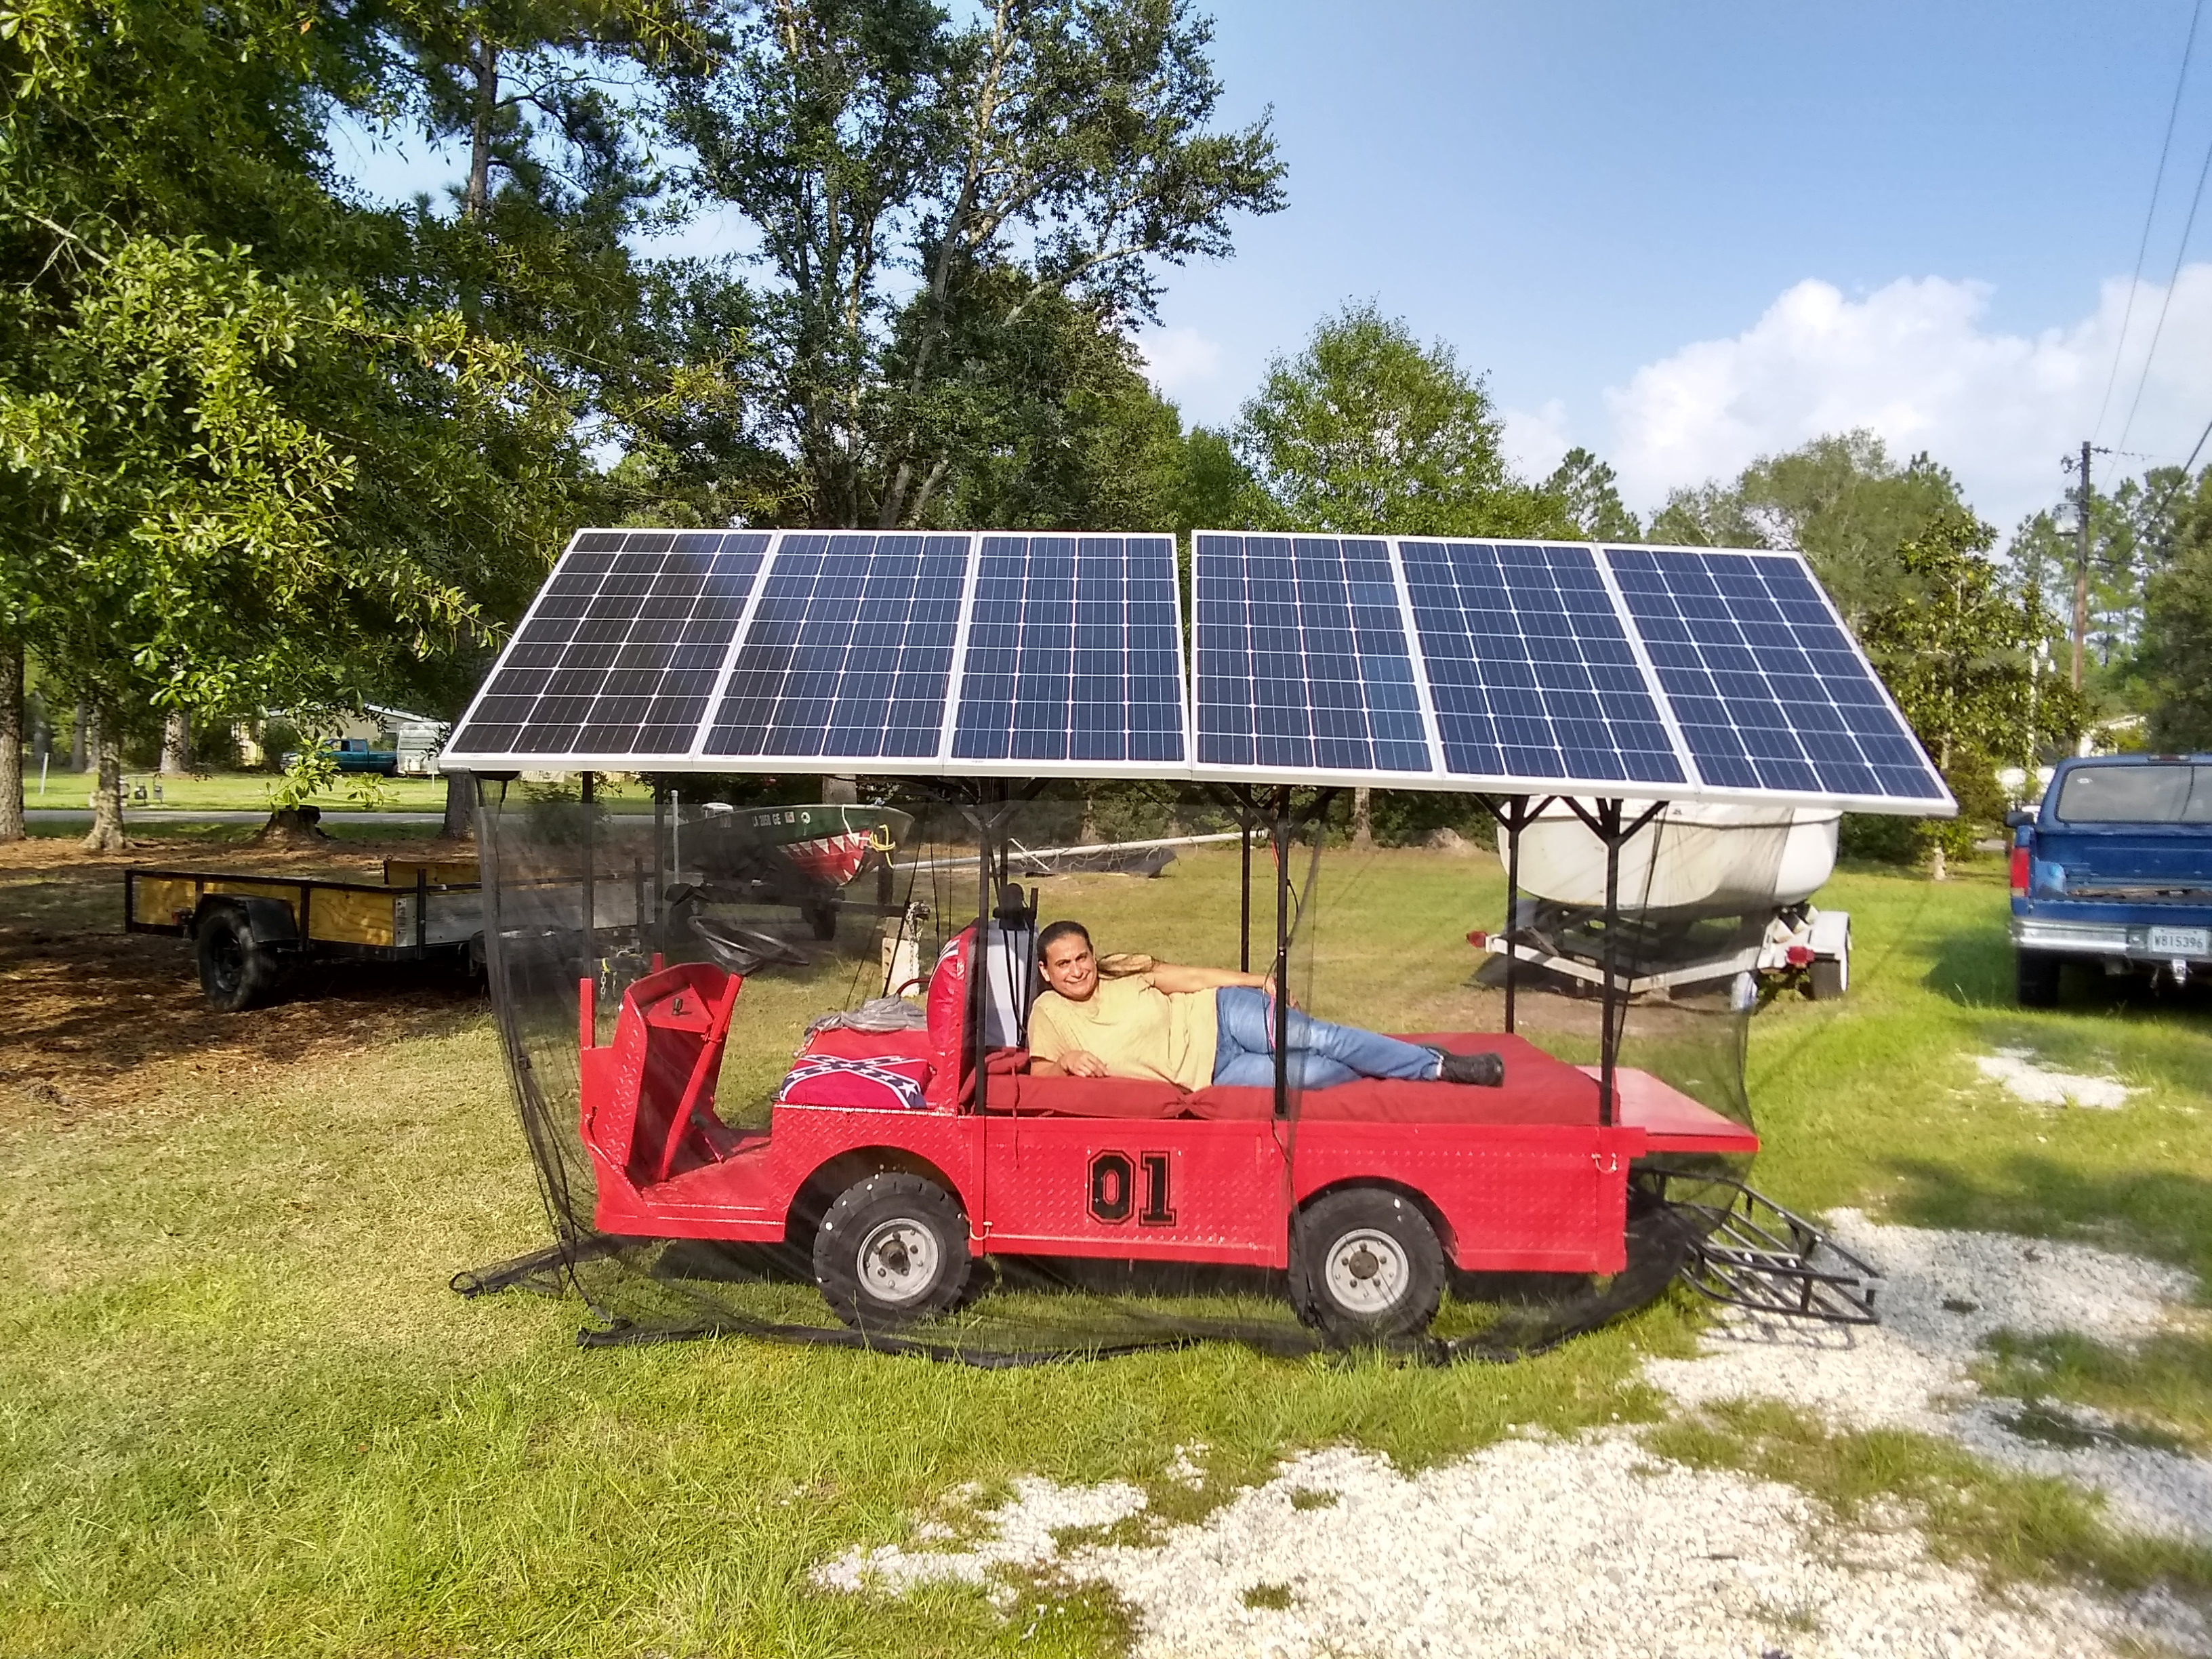 Pv Backup System Using 48v Golf Cart Northernarizona Windandsun Solar Powered Cars Diagram Work Energy Voltage X Img 20180824 165654288 Hdr 32m